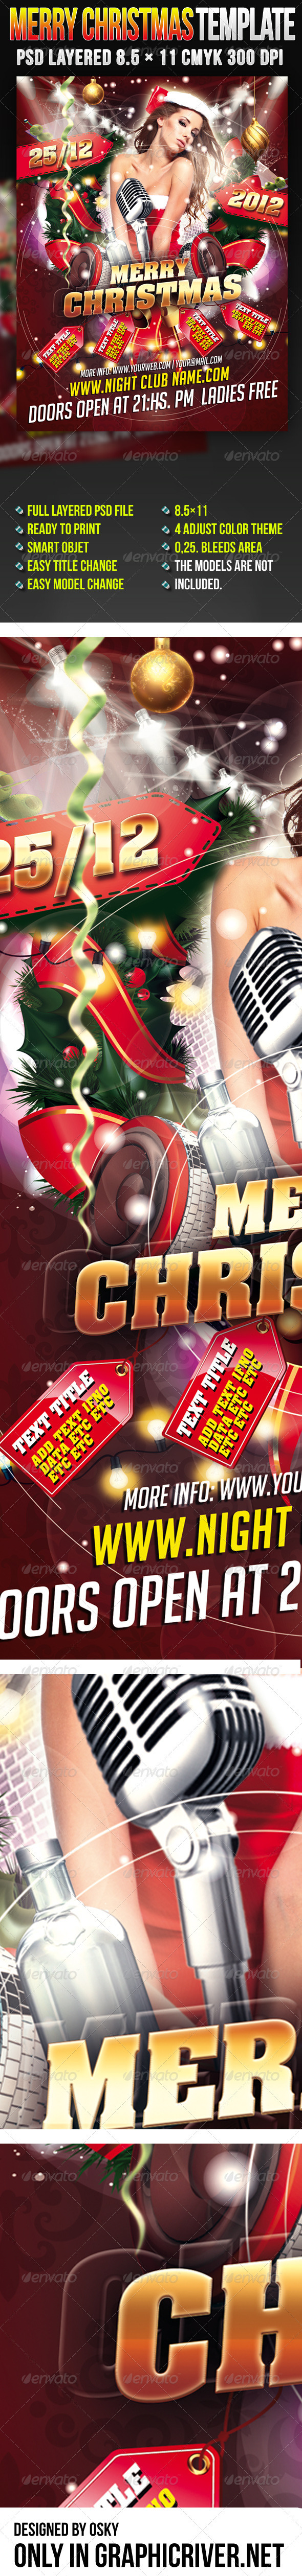 GraphicRiver Merry Christmas Template 3272776